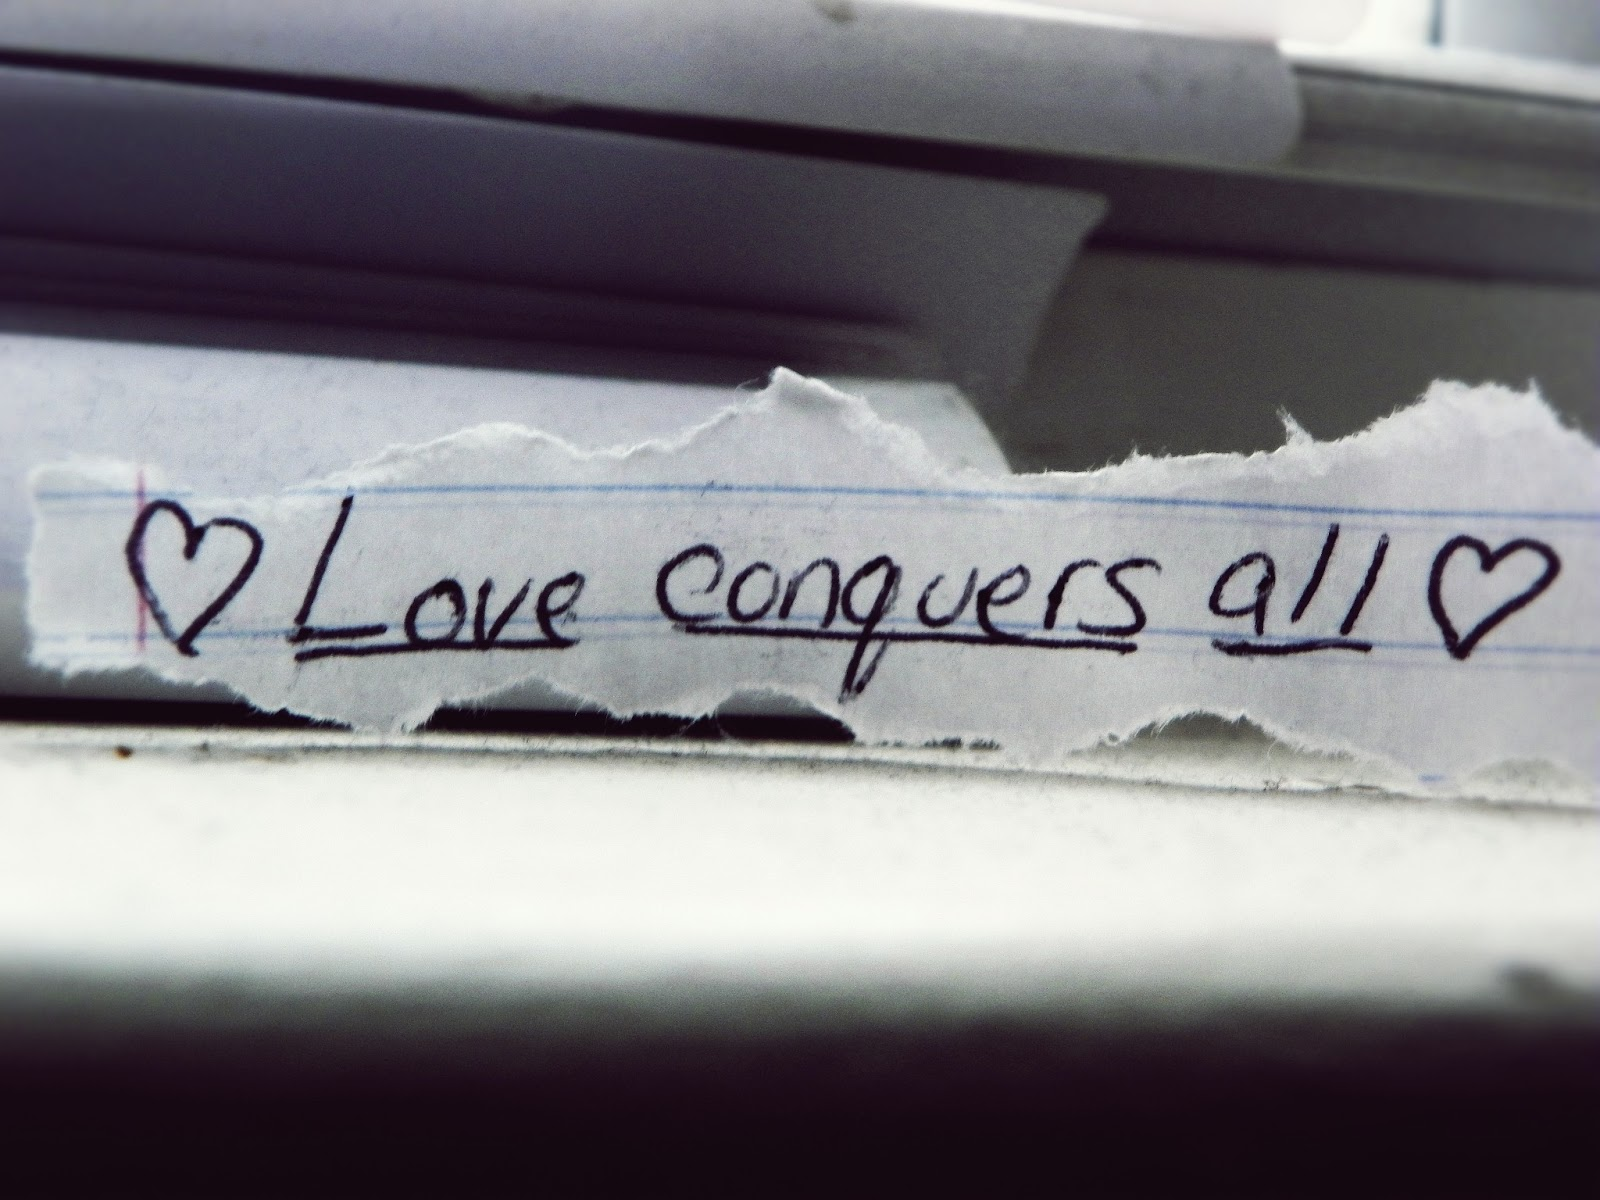 thesis for love conquers all